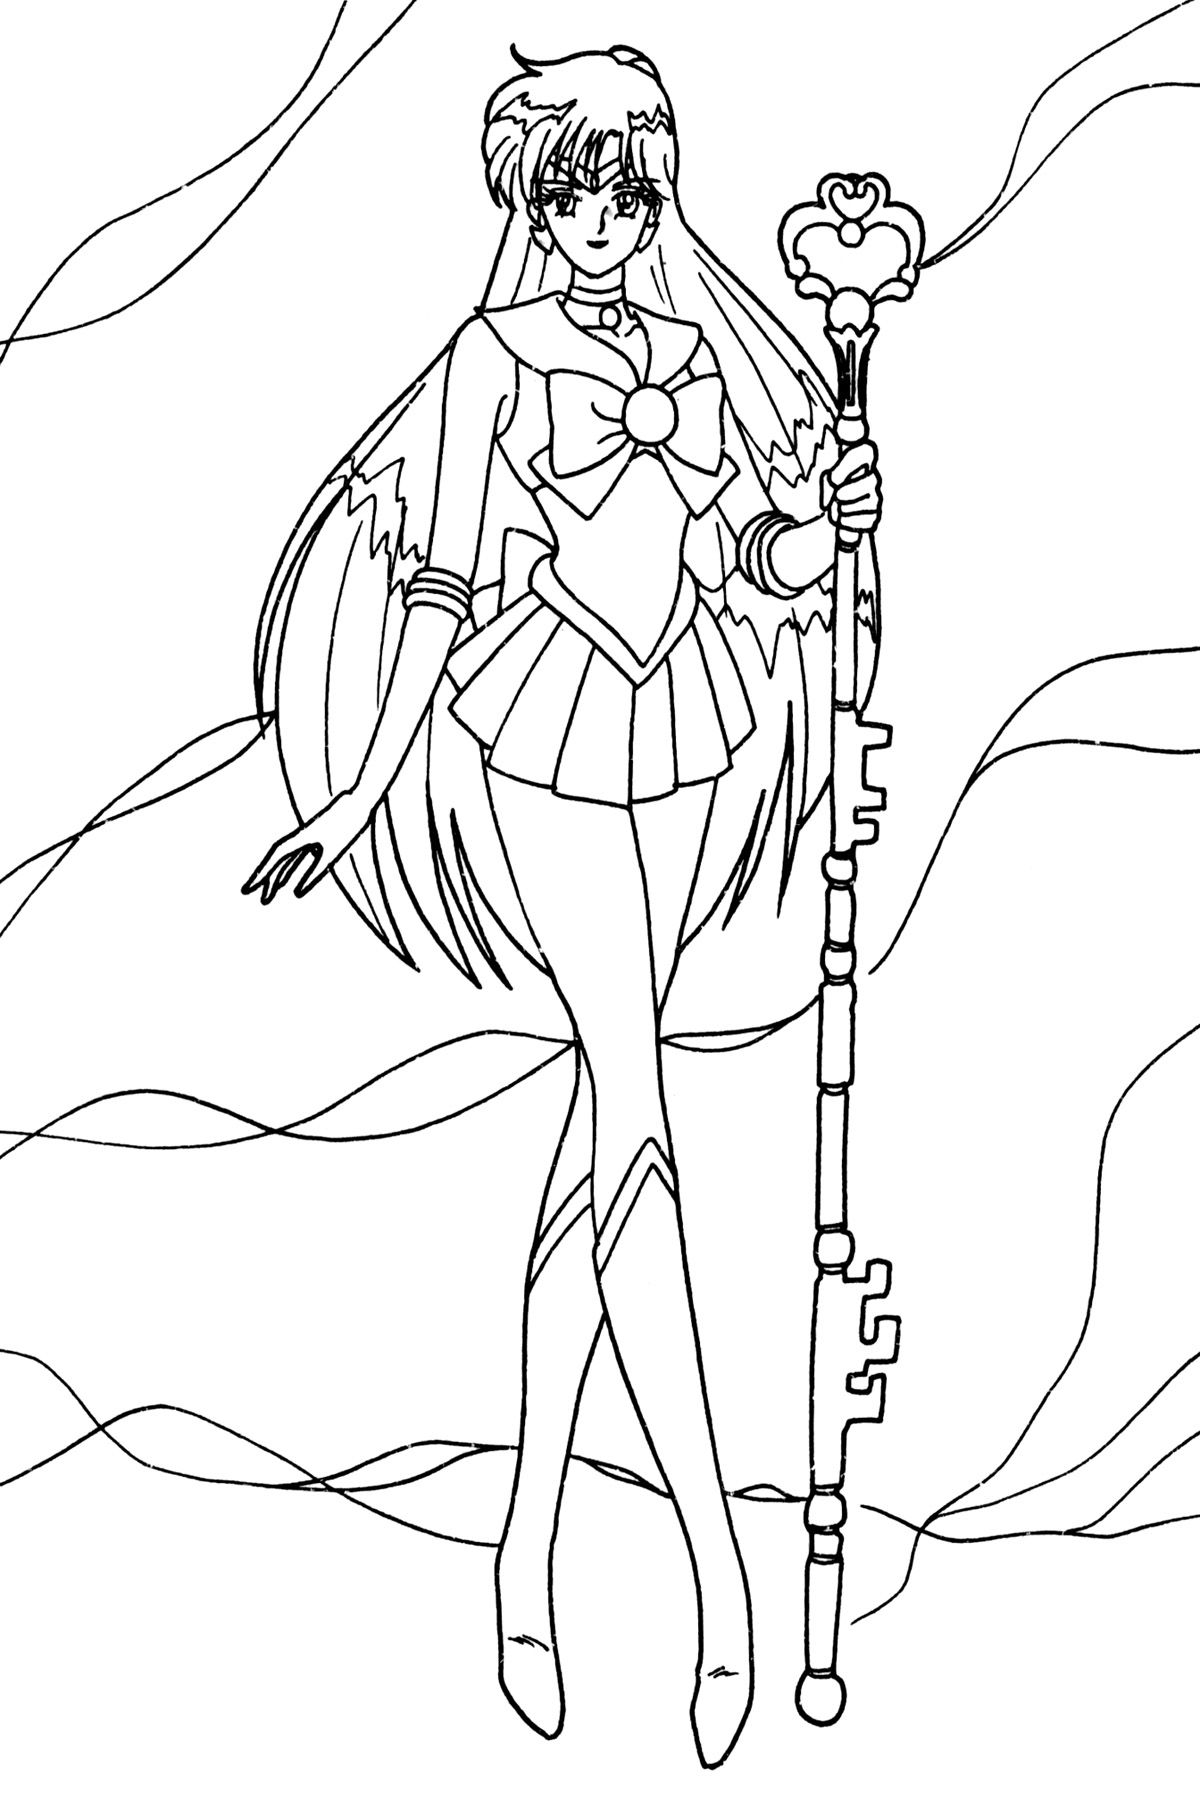 pluto004.jpg (1200×1808) Sailor moon coloring pages